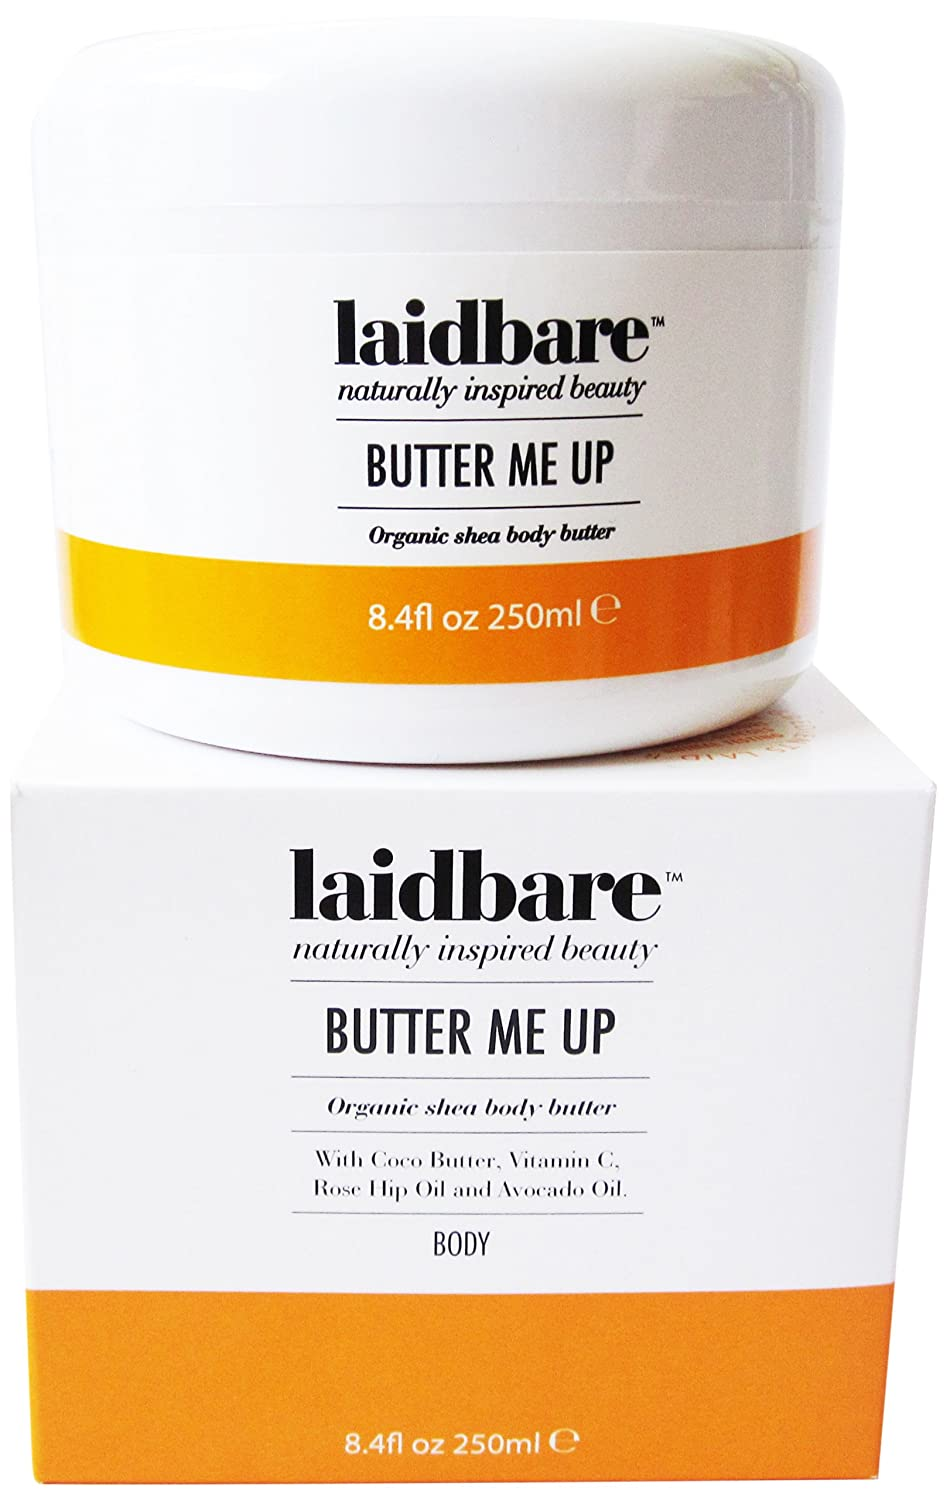 Butter Me Up Organic Shea Body Butter 250ml Touch my Face Ltd TMF7